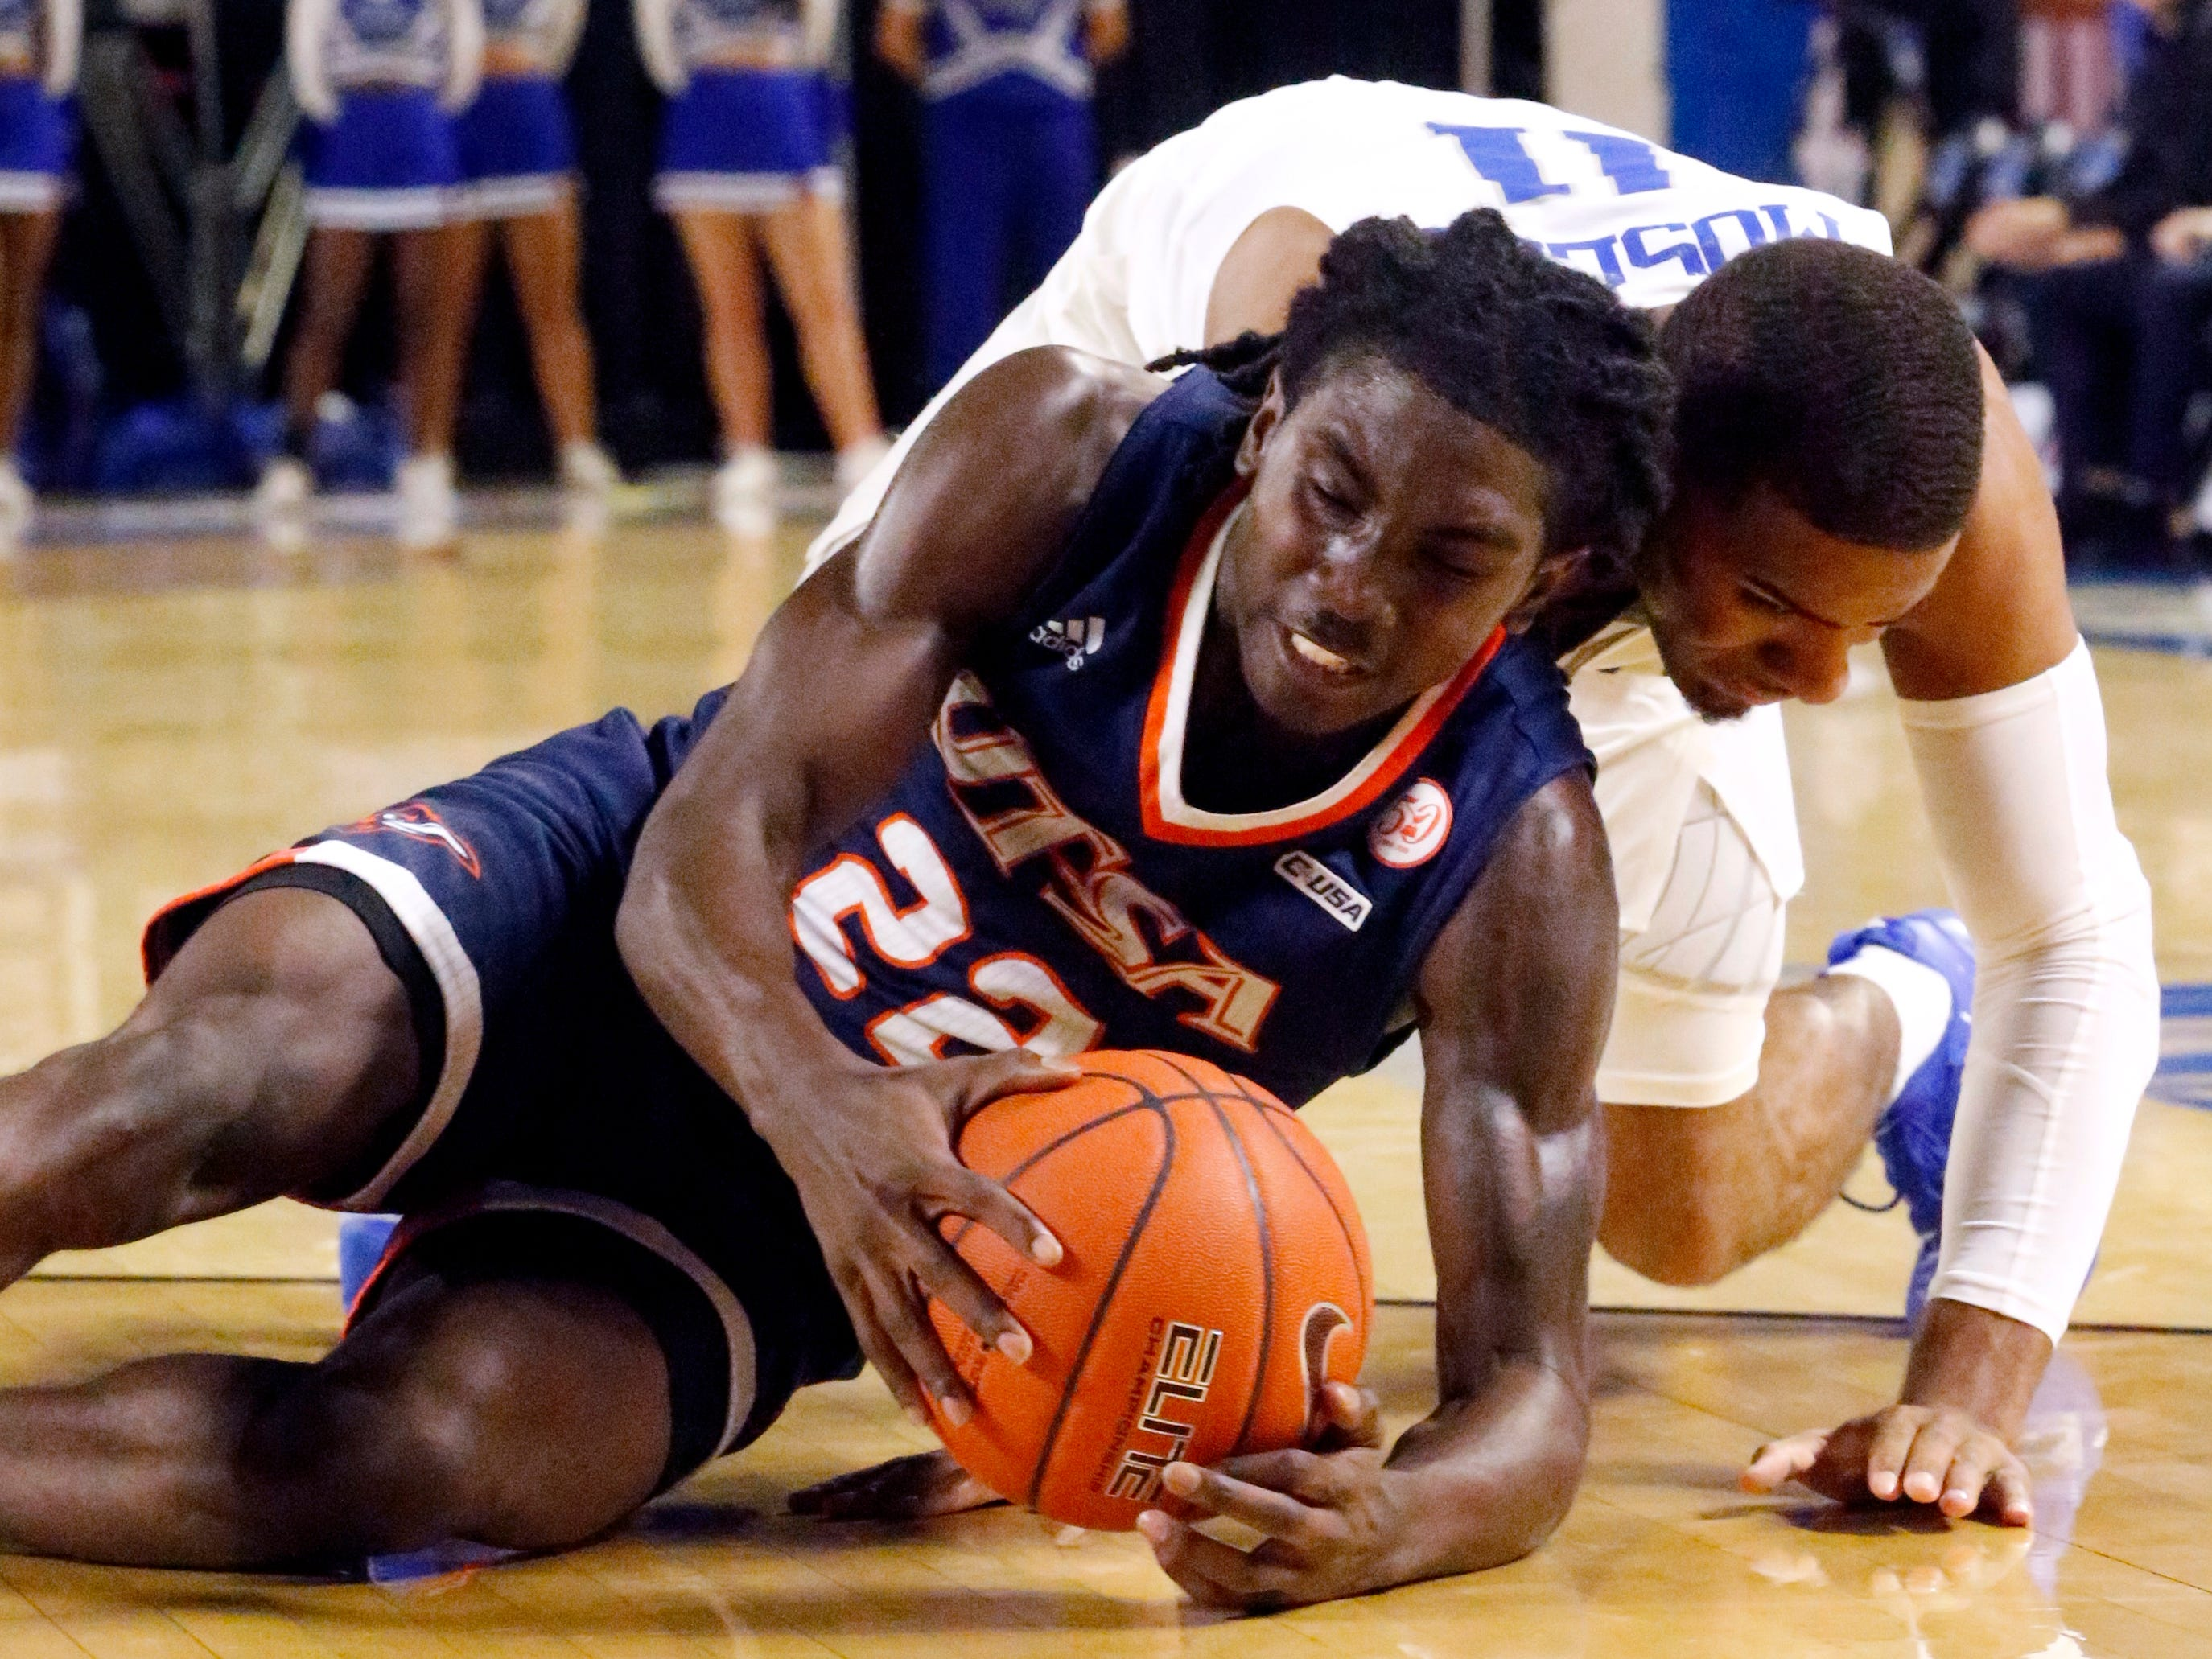 MTSU's guard Lawrence Mosley (11) falls with the ball as UTSA's forward Austin Timperman (32) grabs the loose ball on Thursday Jan. 17, 2019.